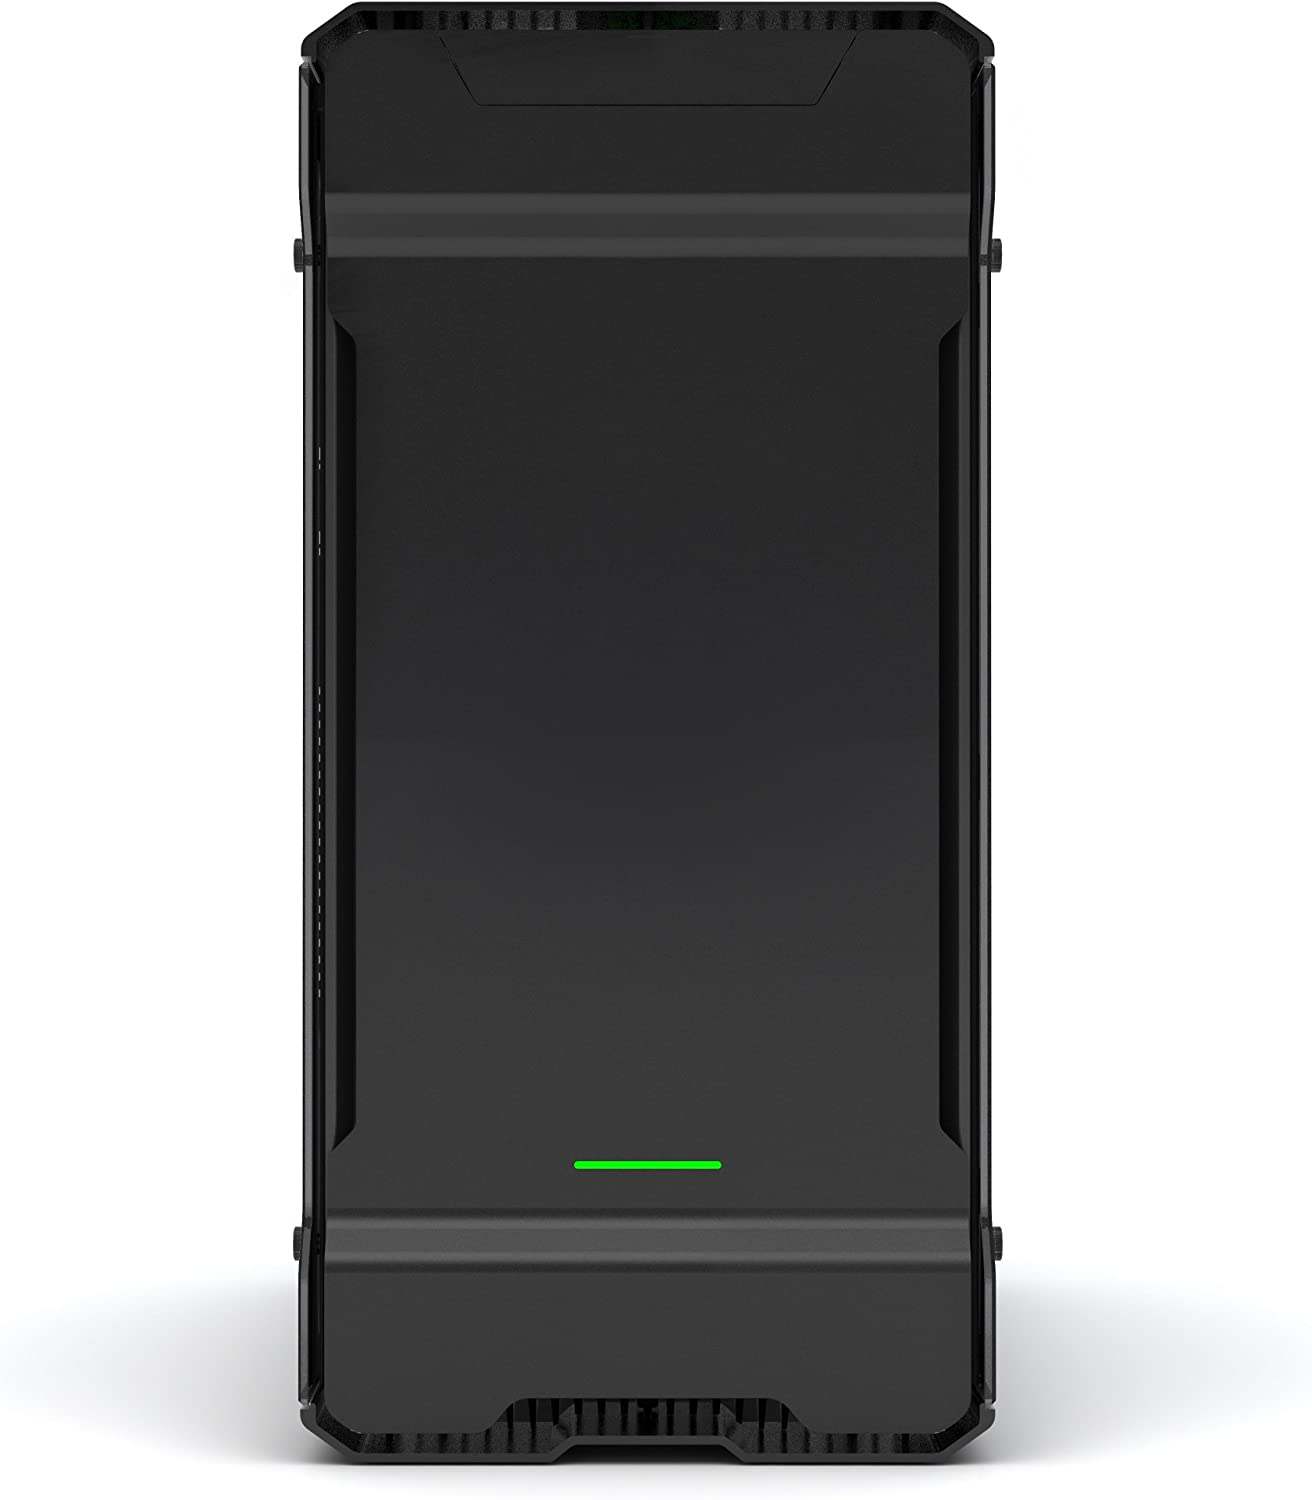 Phanteks Enthoo Evolv ATX Glass Midi-Tower Argento nero